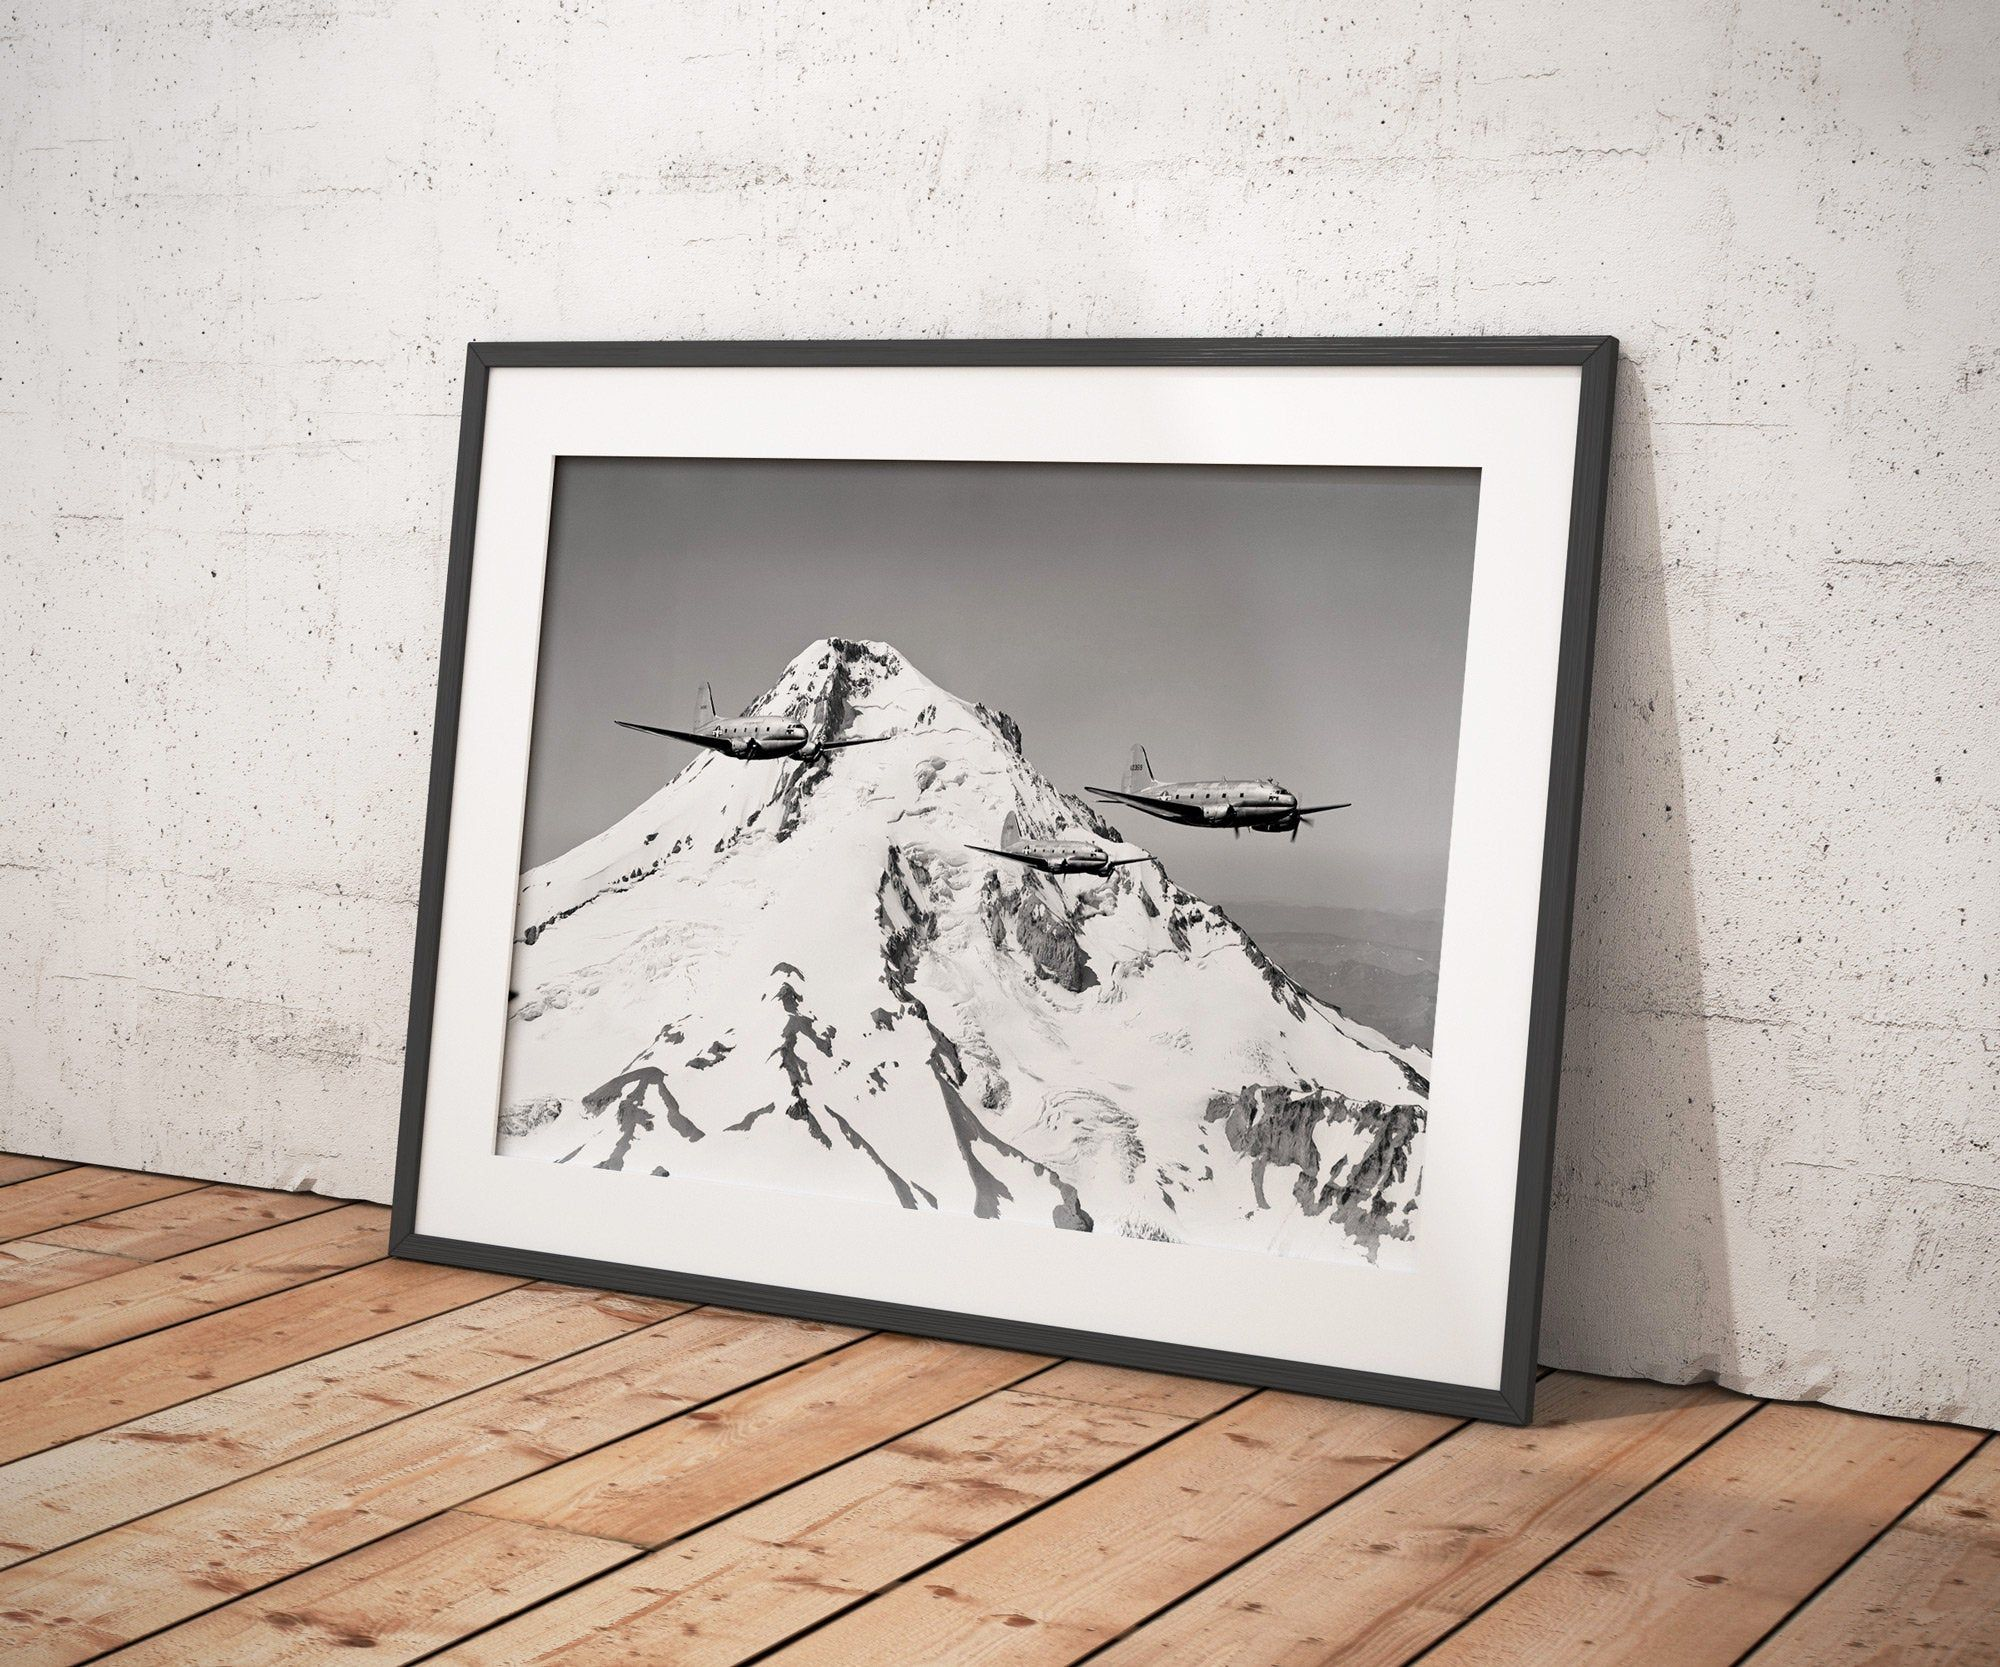 Air Force Planes Flying Over Mt Hood Print From Original 1951 Negative Vintage Military Photography Oregon Wall Art Airplane Print In 2020 Airplane Print Military Photography Fine Art Prints